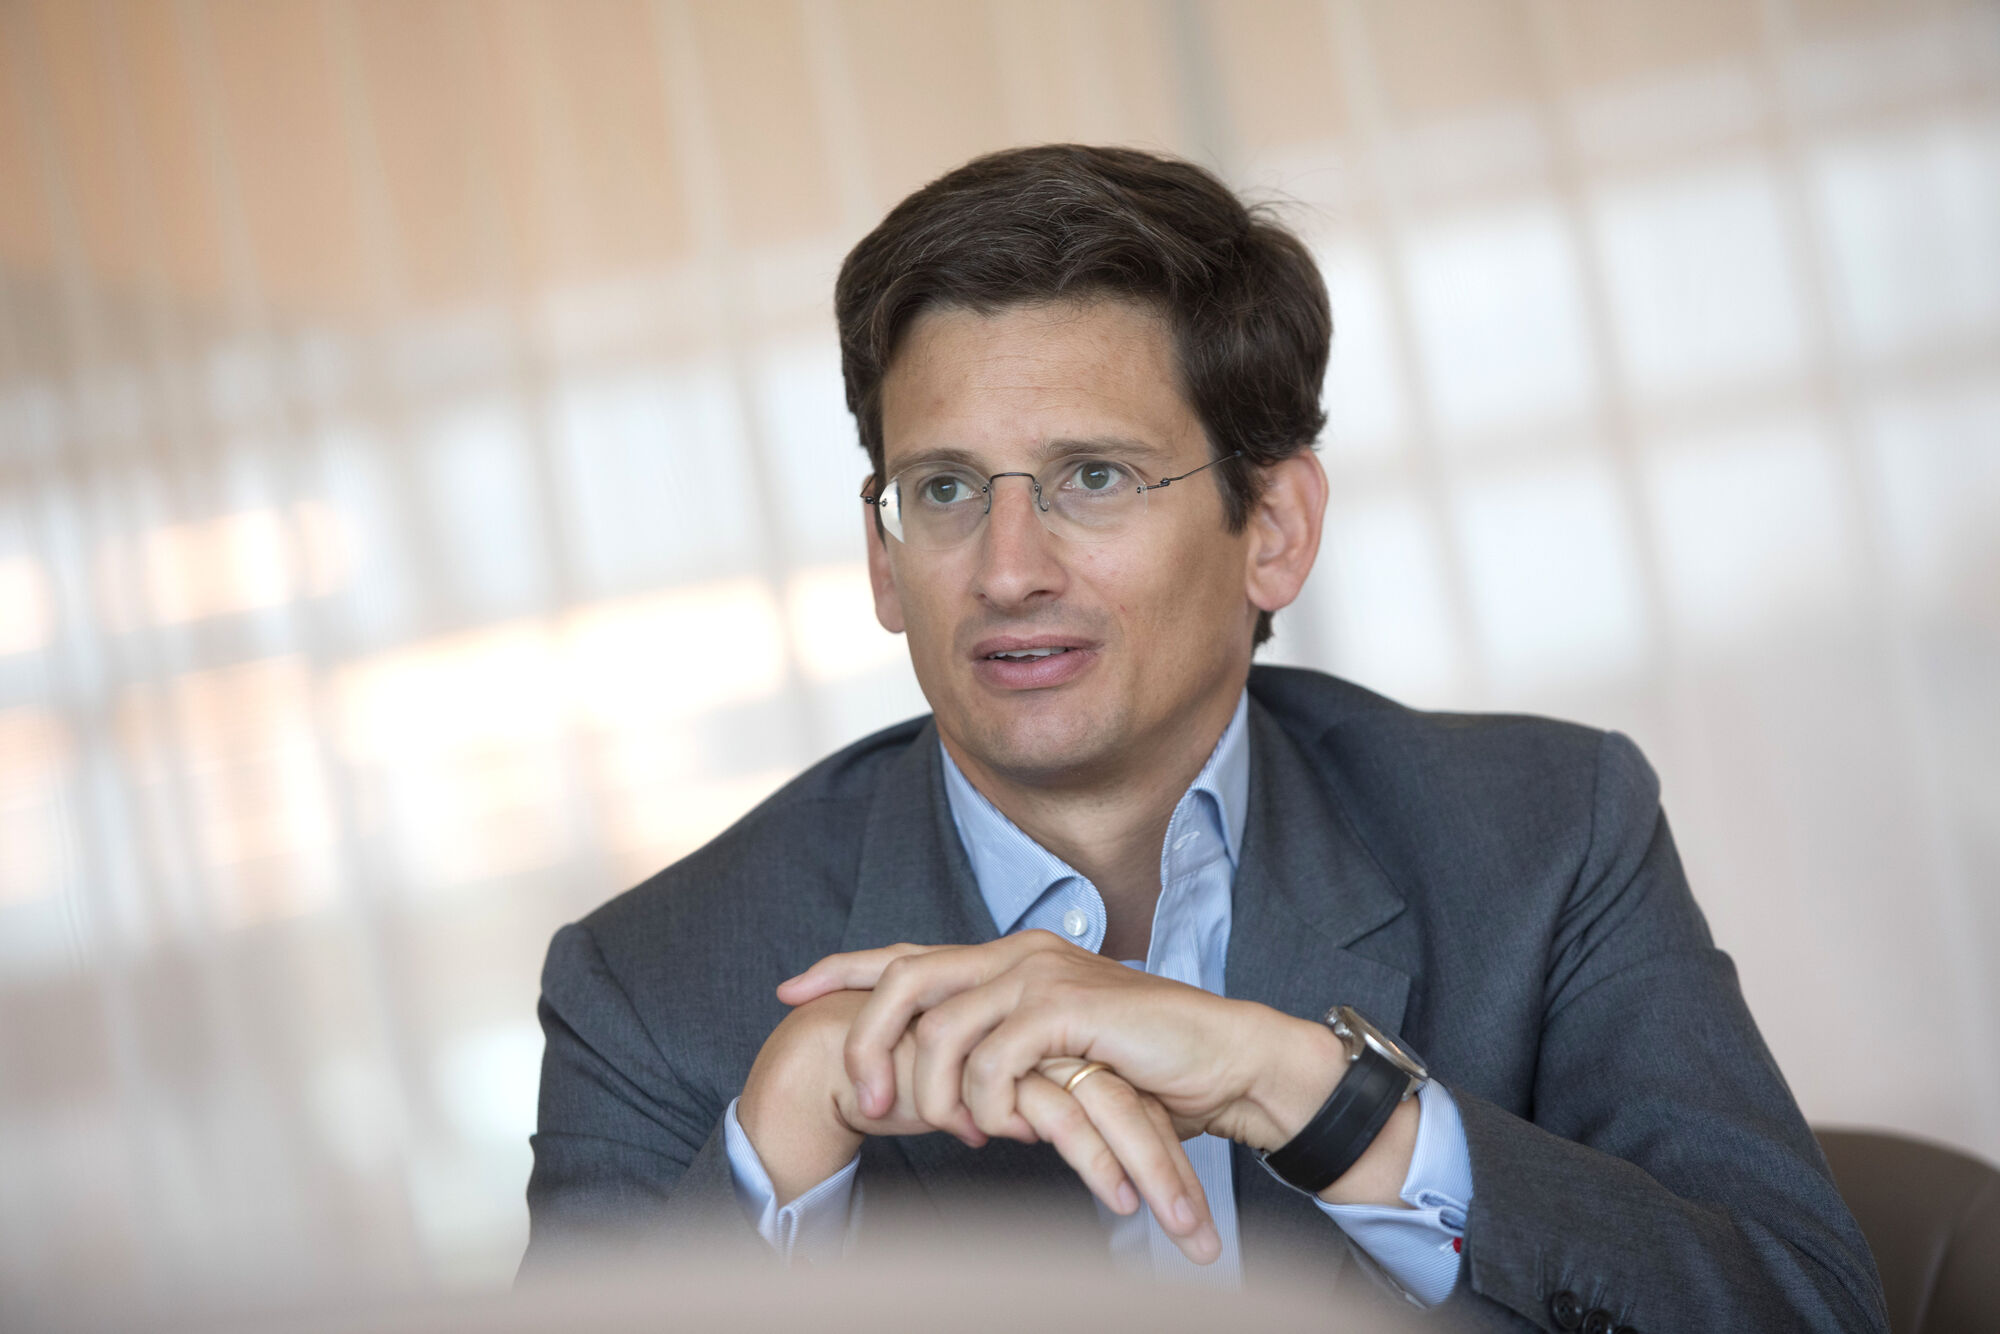 CEO F. Peter Mitterbauer